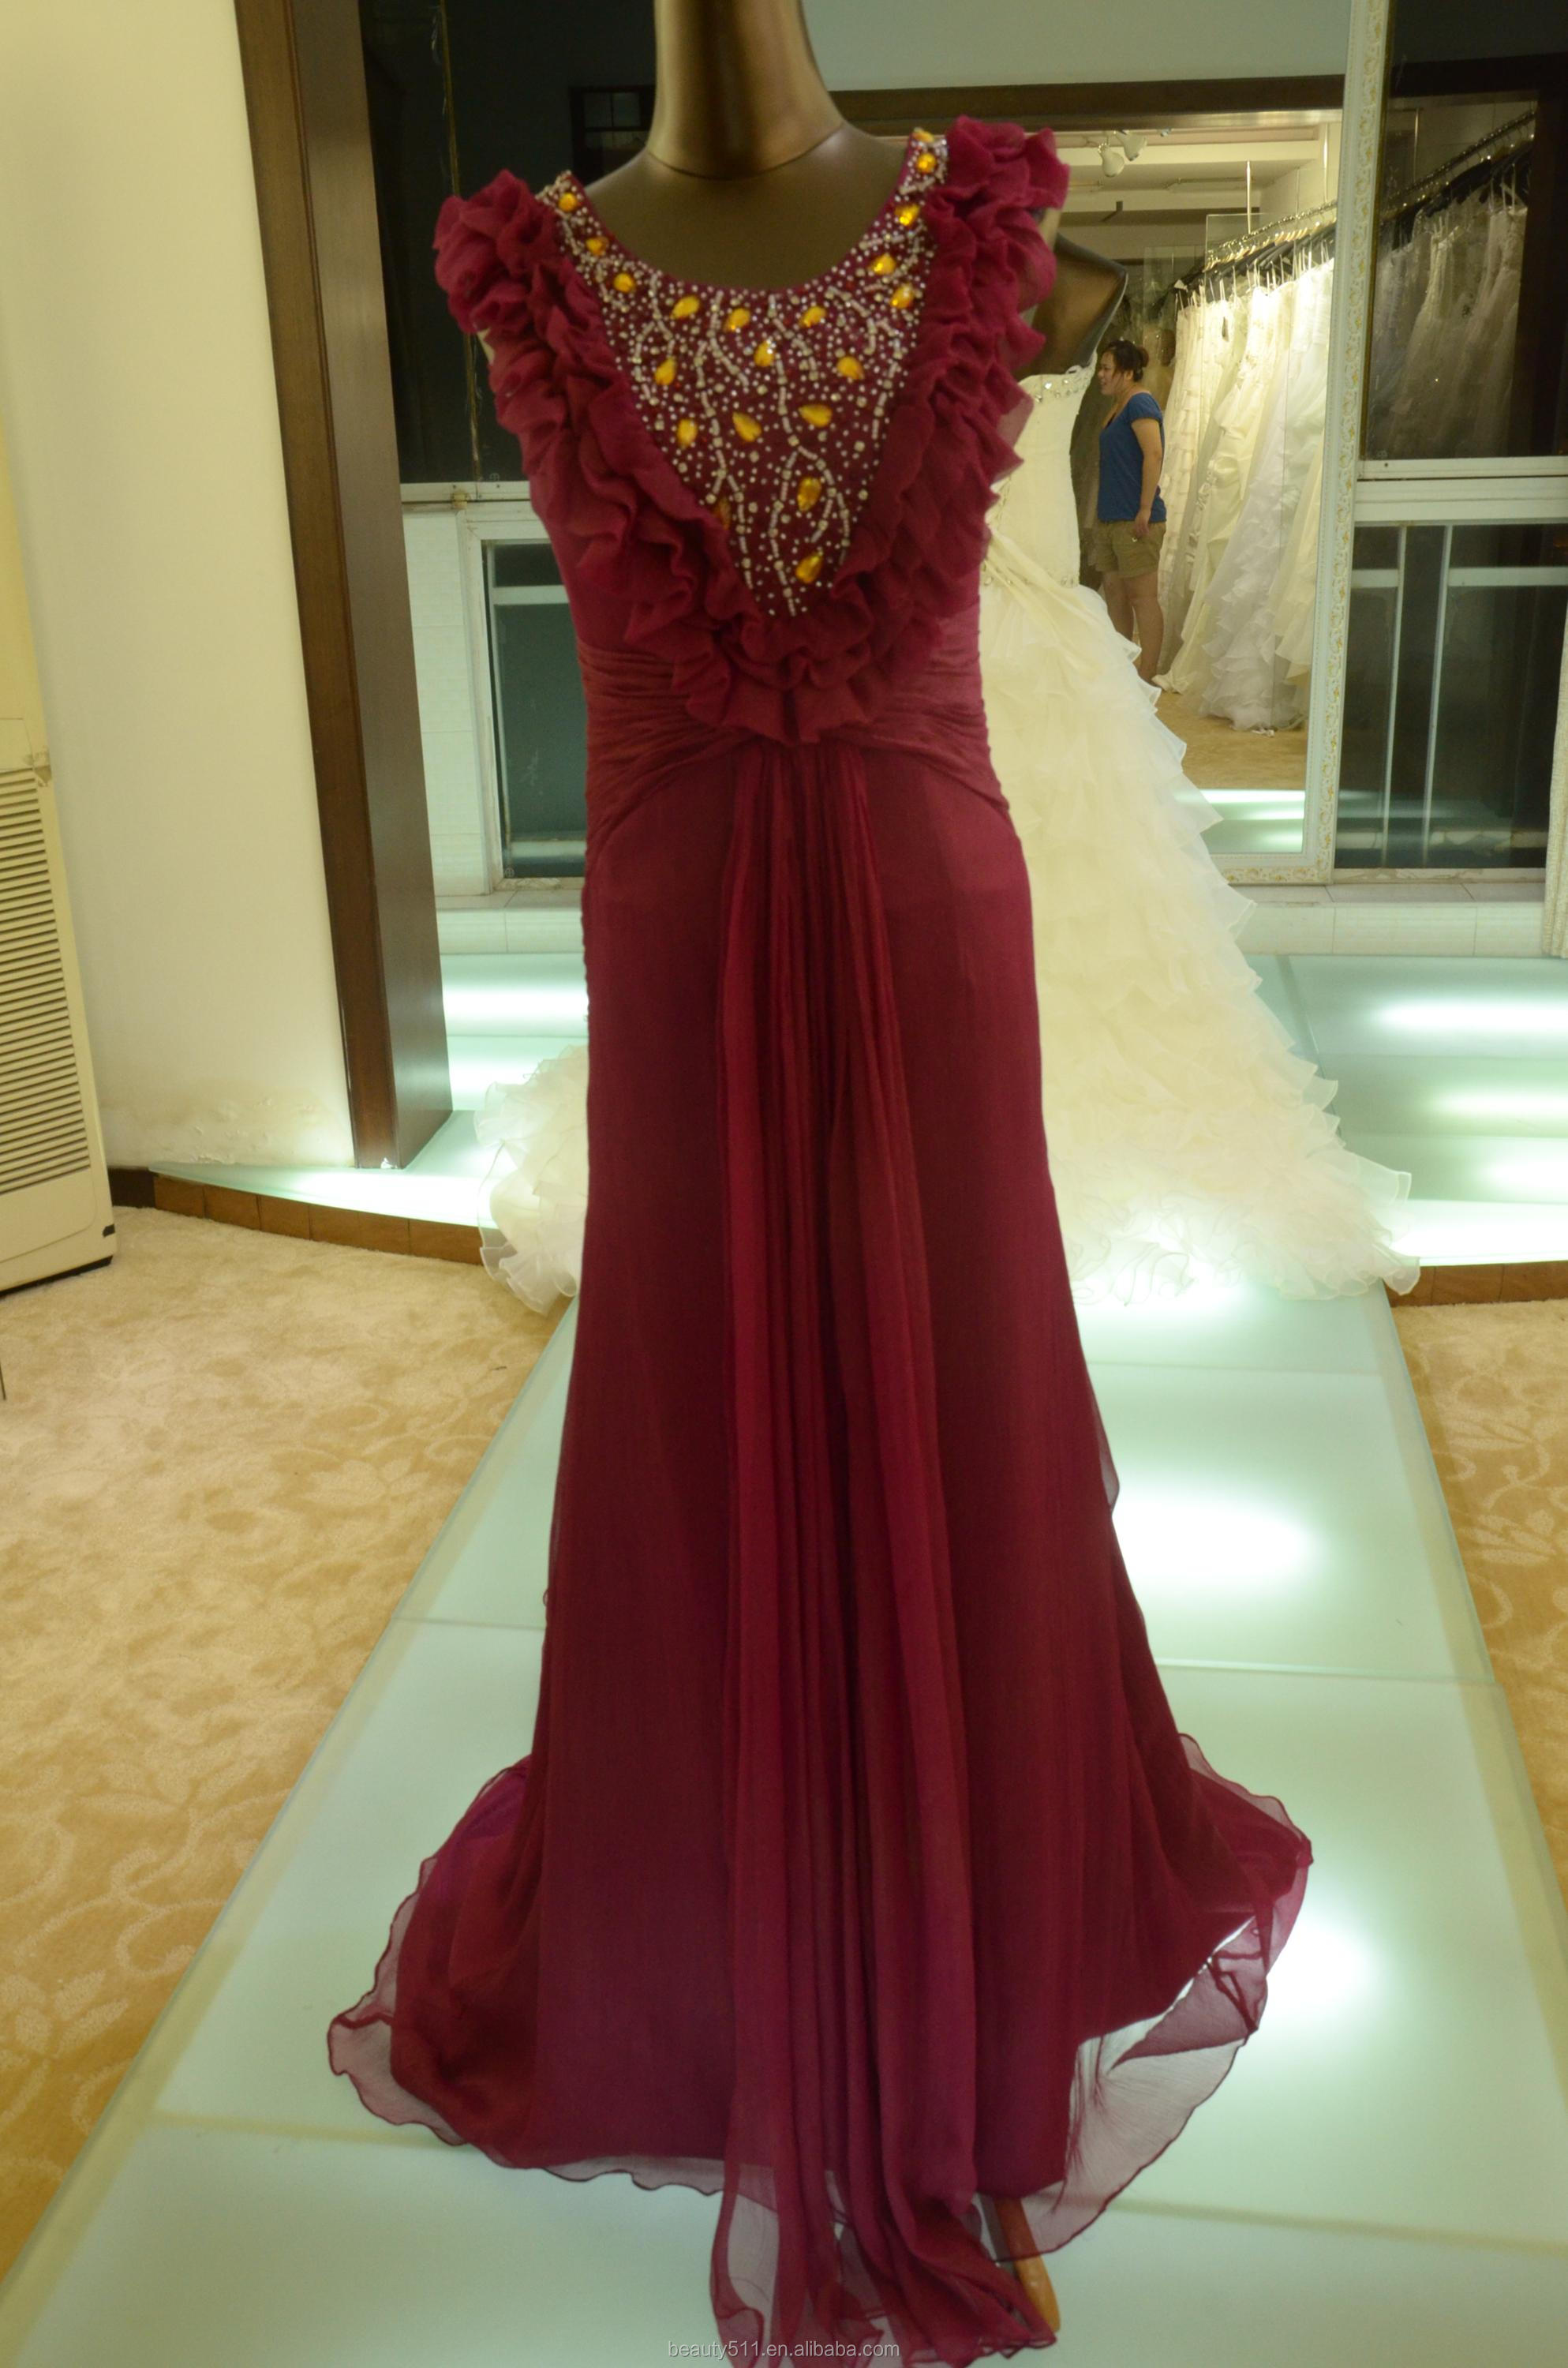 IN STOCK Scoop party dress women's real silk red prom dress SE17